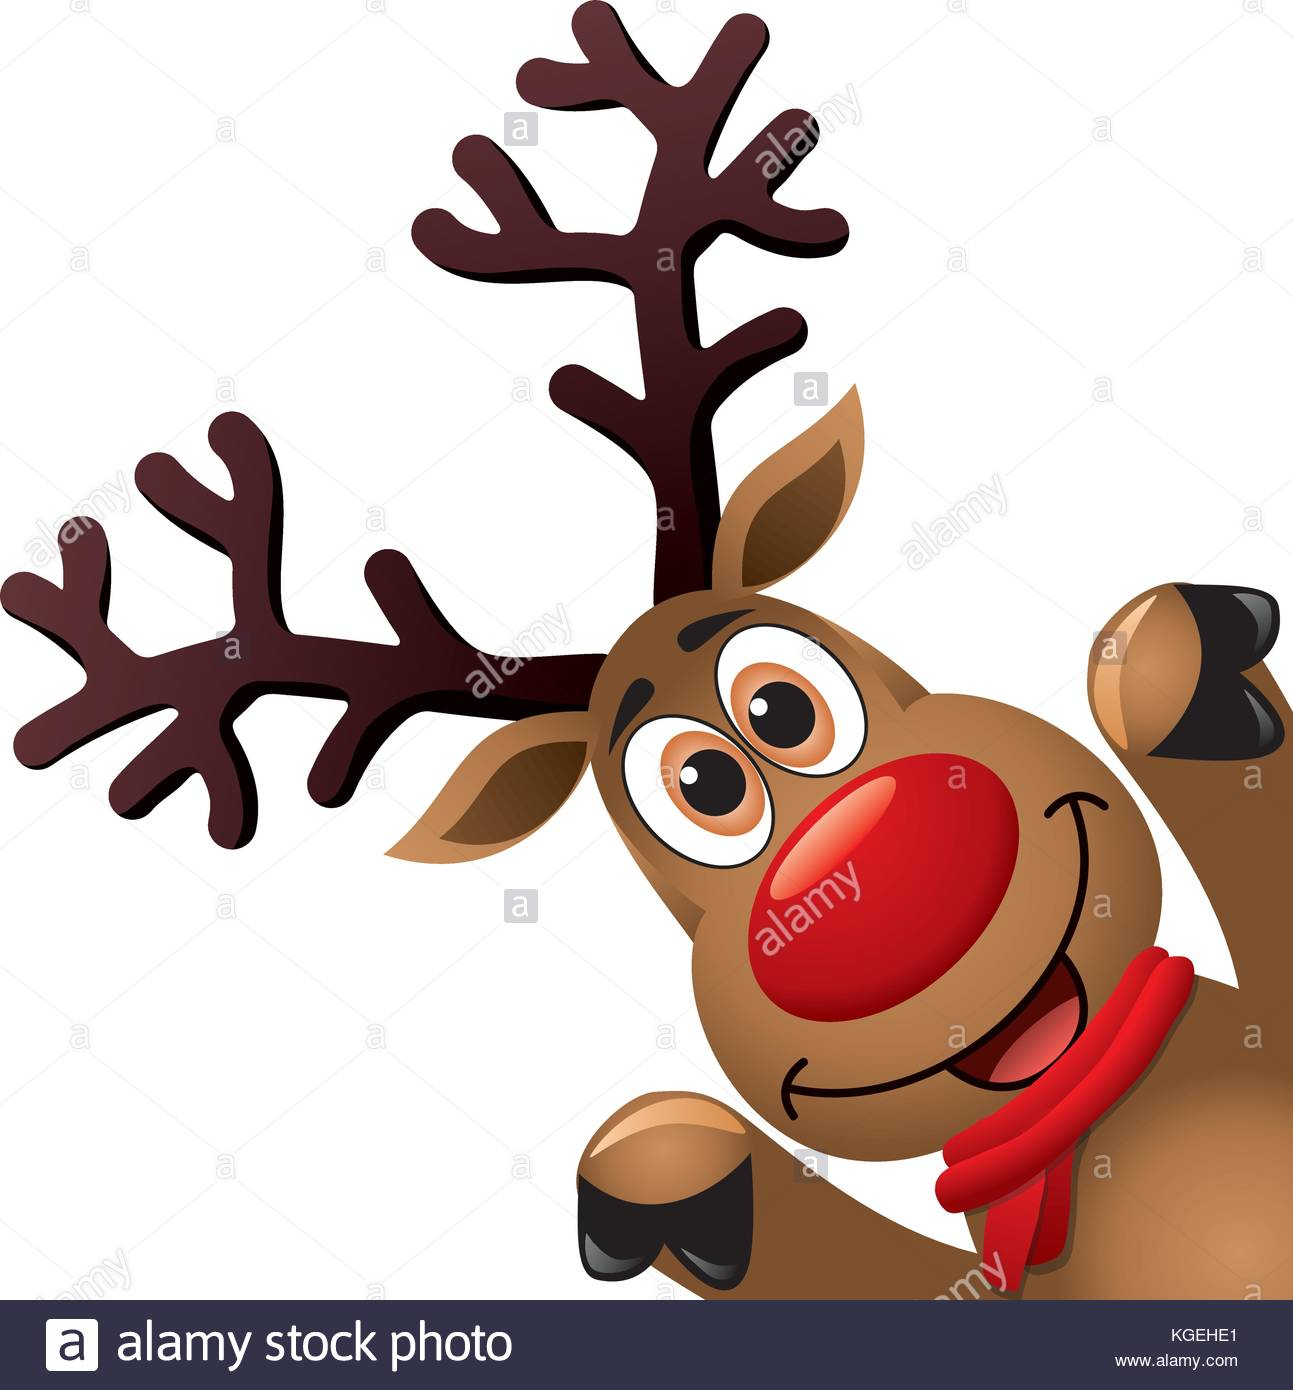 1293x1390 Vector Xmas Drawing Of Funny Red Nosed Reindeer. Christmas Card